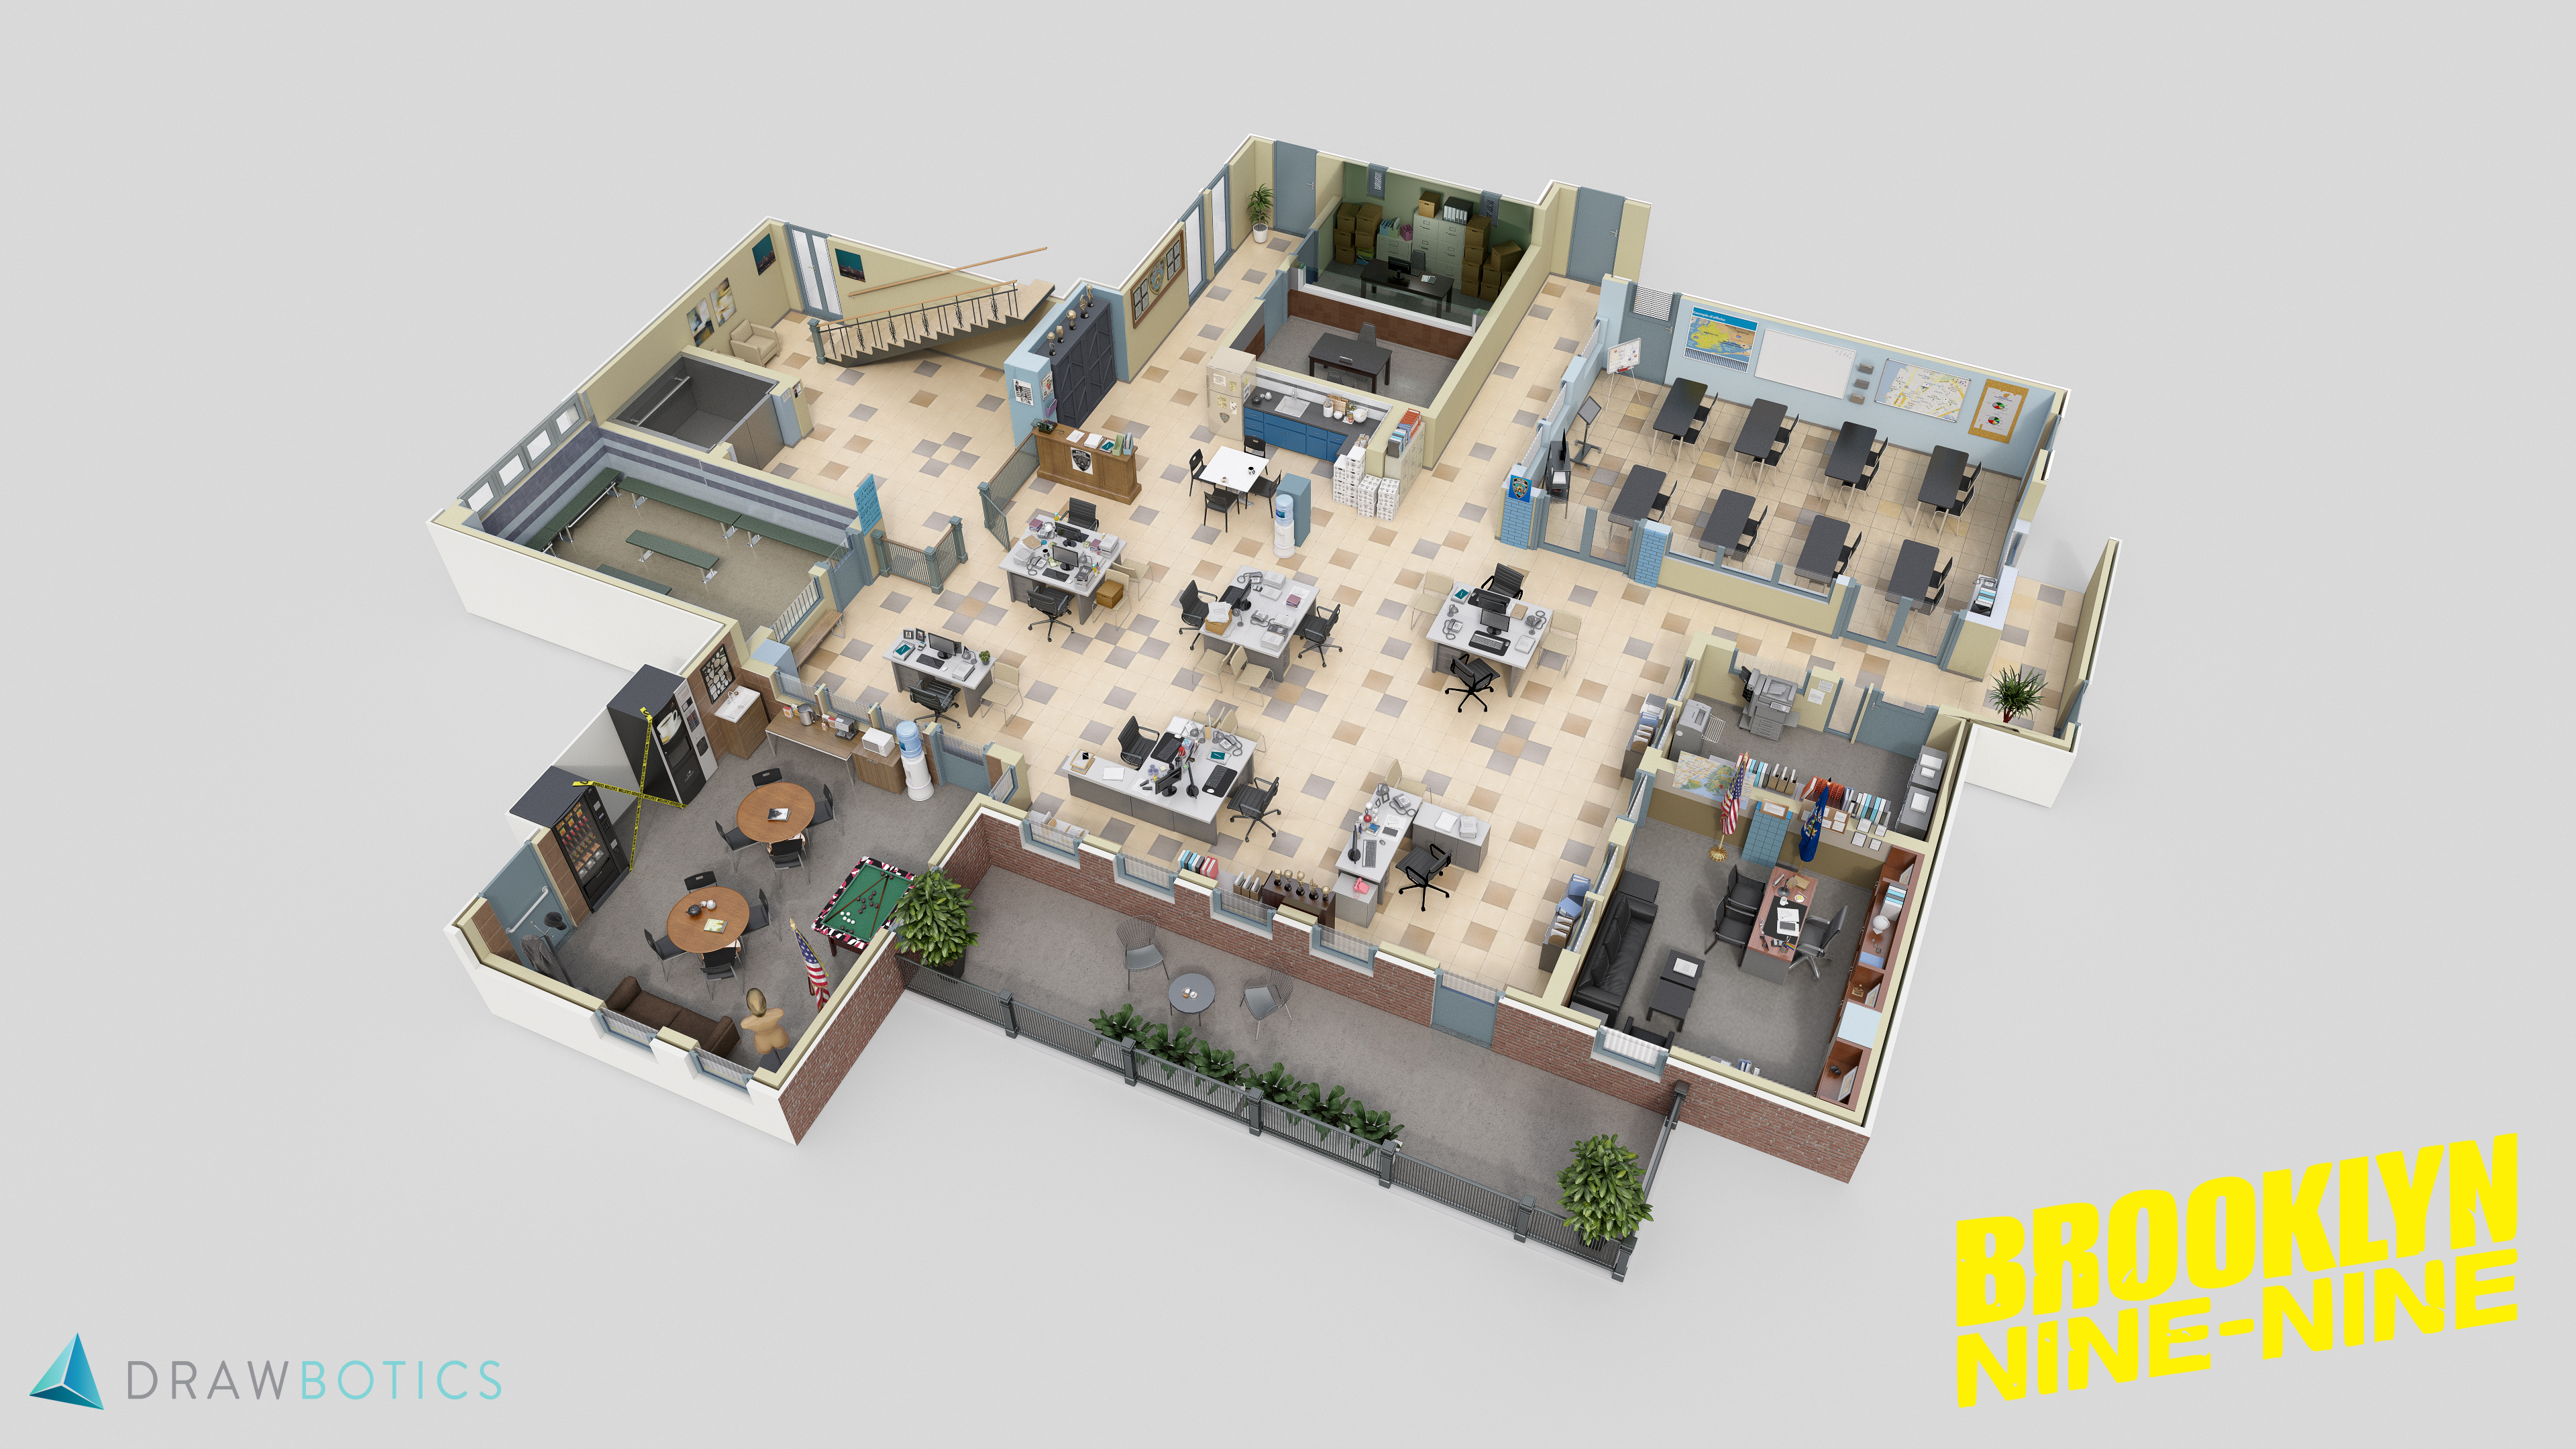 the office floor plan. 4) Brooklyn Nine-Nine. While Creating This Floor Plan The Office